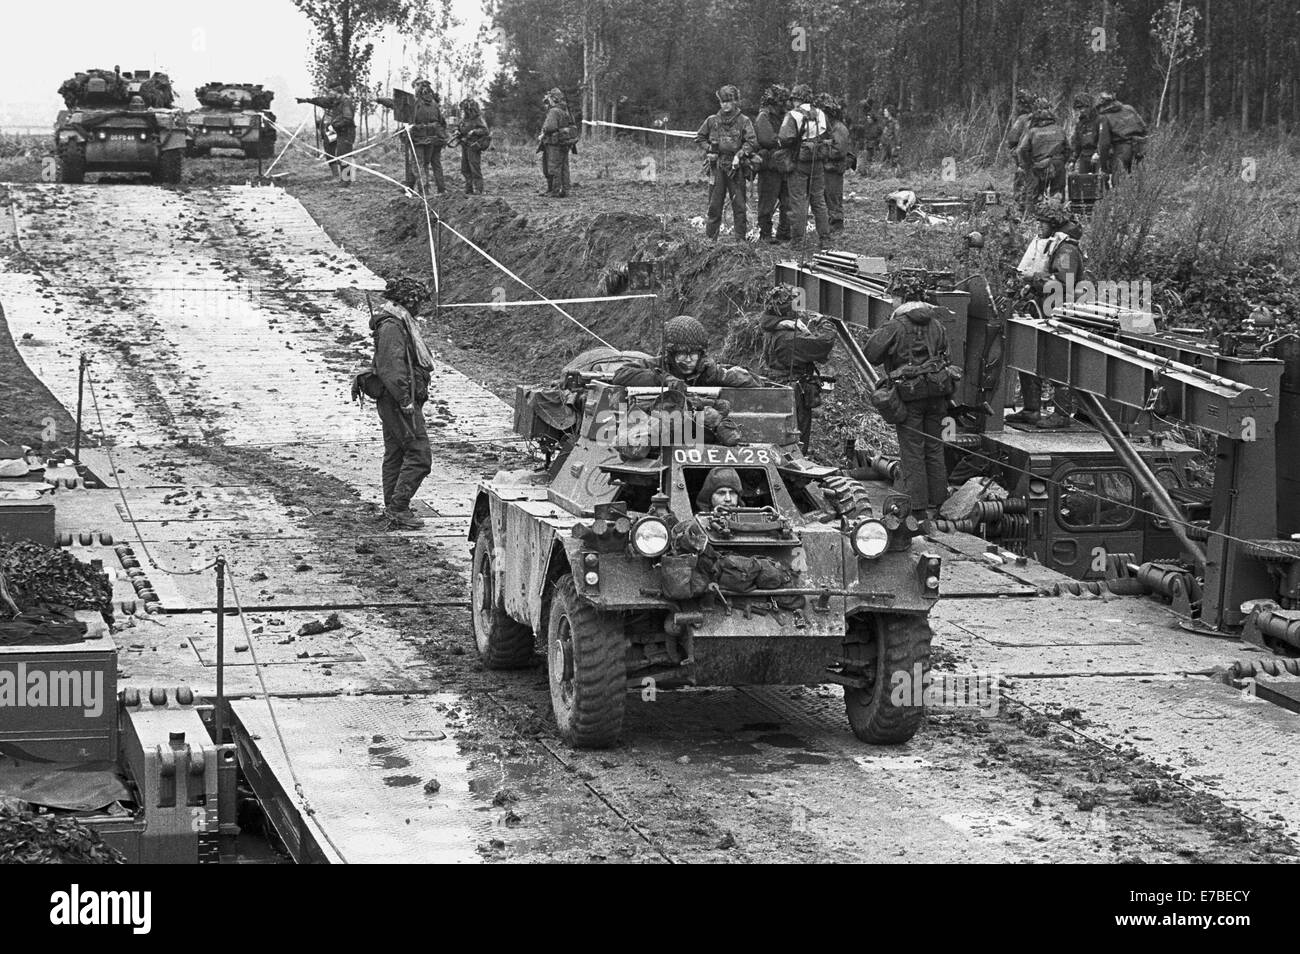 NATO exercises in Germany, British Army armored vehicles cross a pontoon bridge (September 1984) - Stock Image